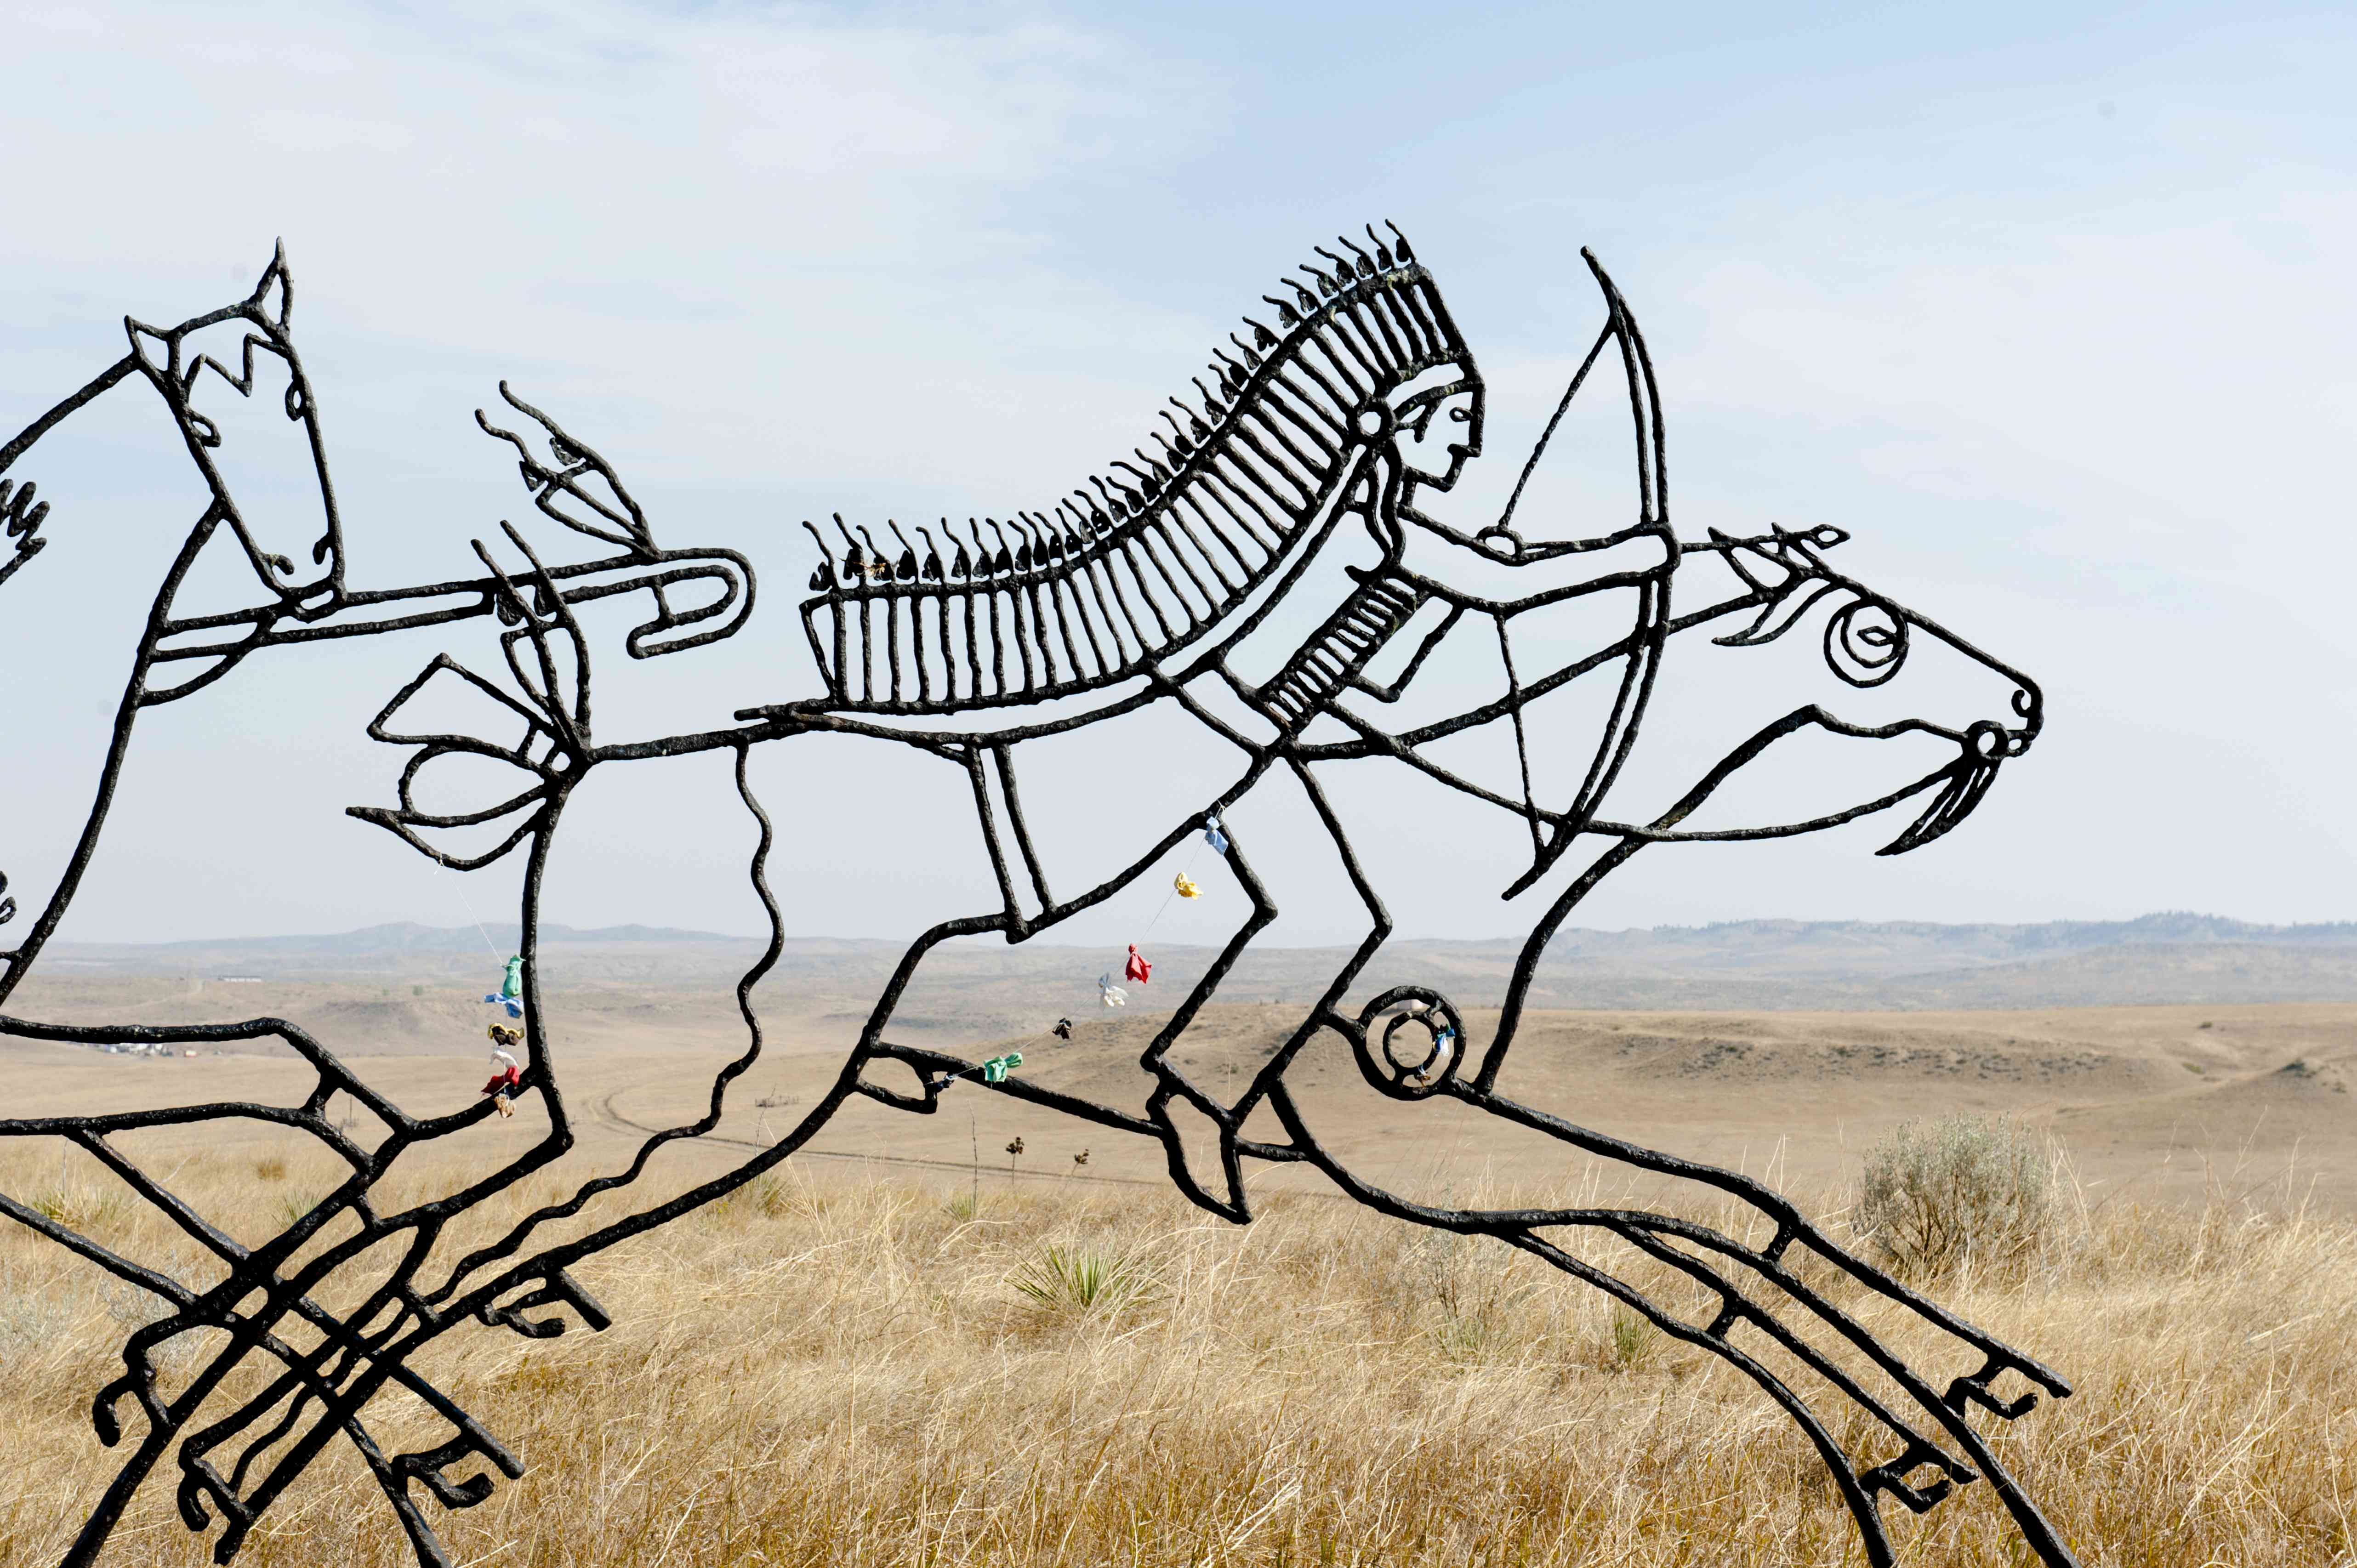 Monument, Indian Memorial, Sioux Indian riding a horse, Little Bighorn Battlefield National Monument, Montana Province, USA